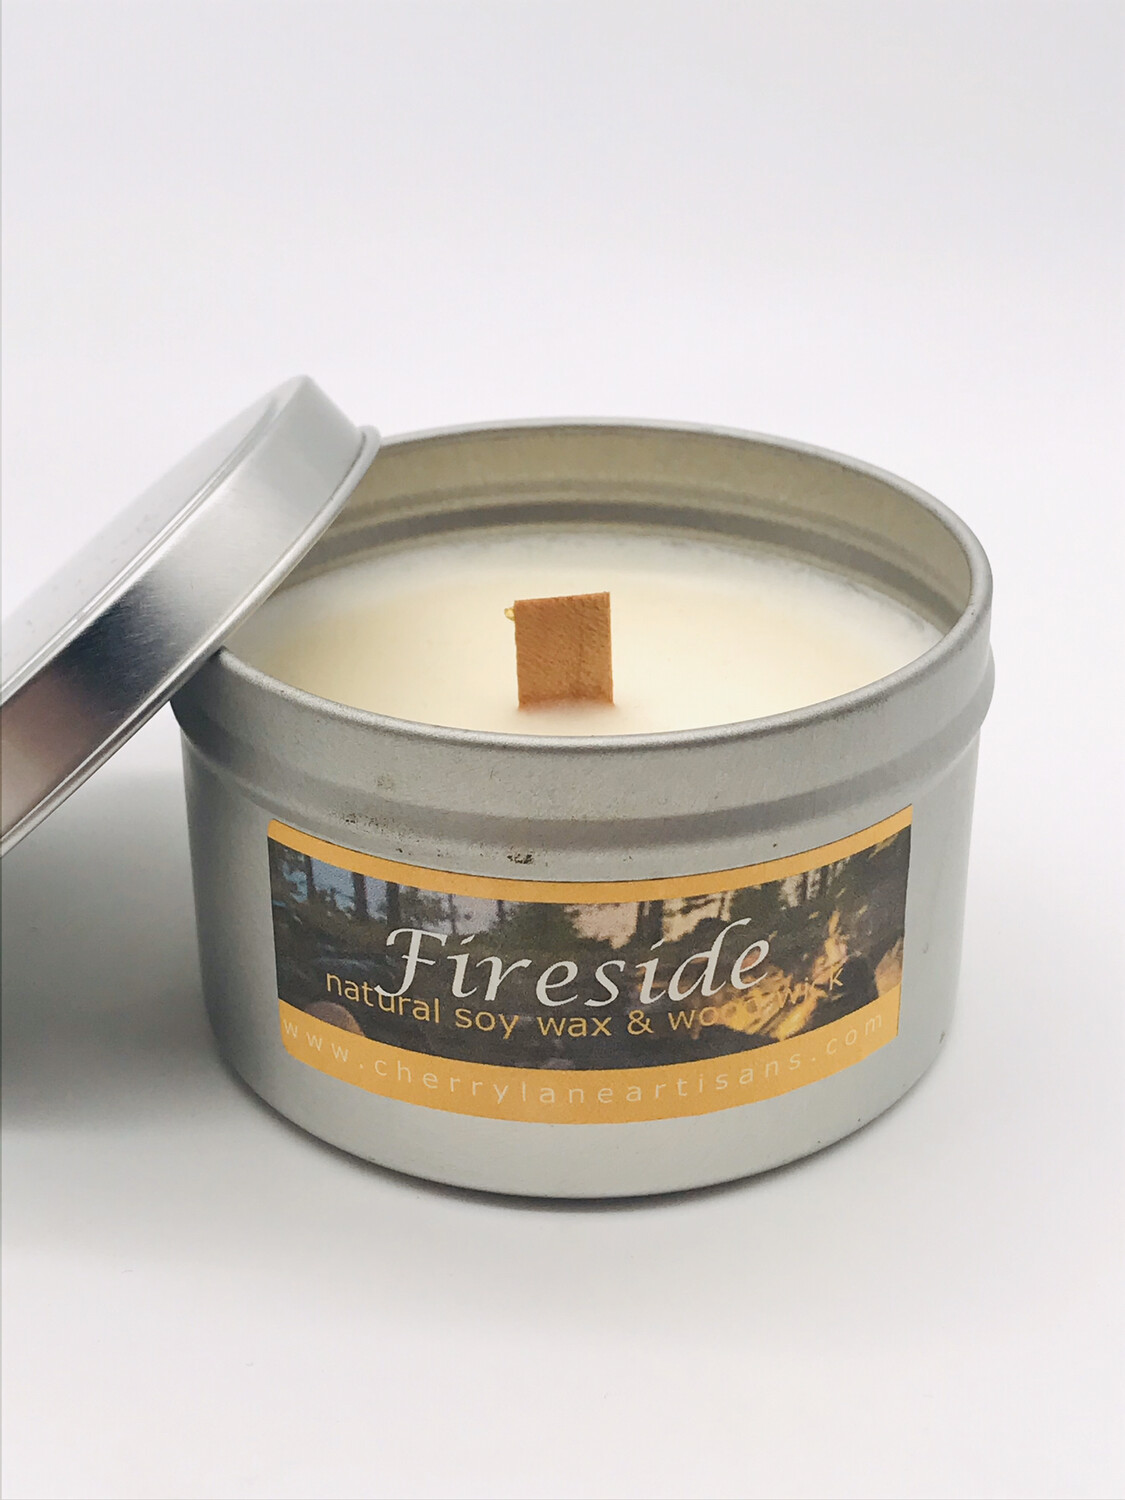 Fireside Scented Soy Wax Candle with Wood Wick, 6 oz Tin.